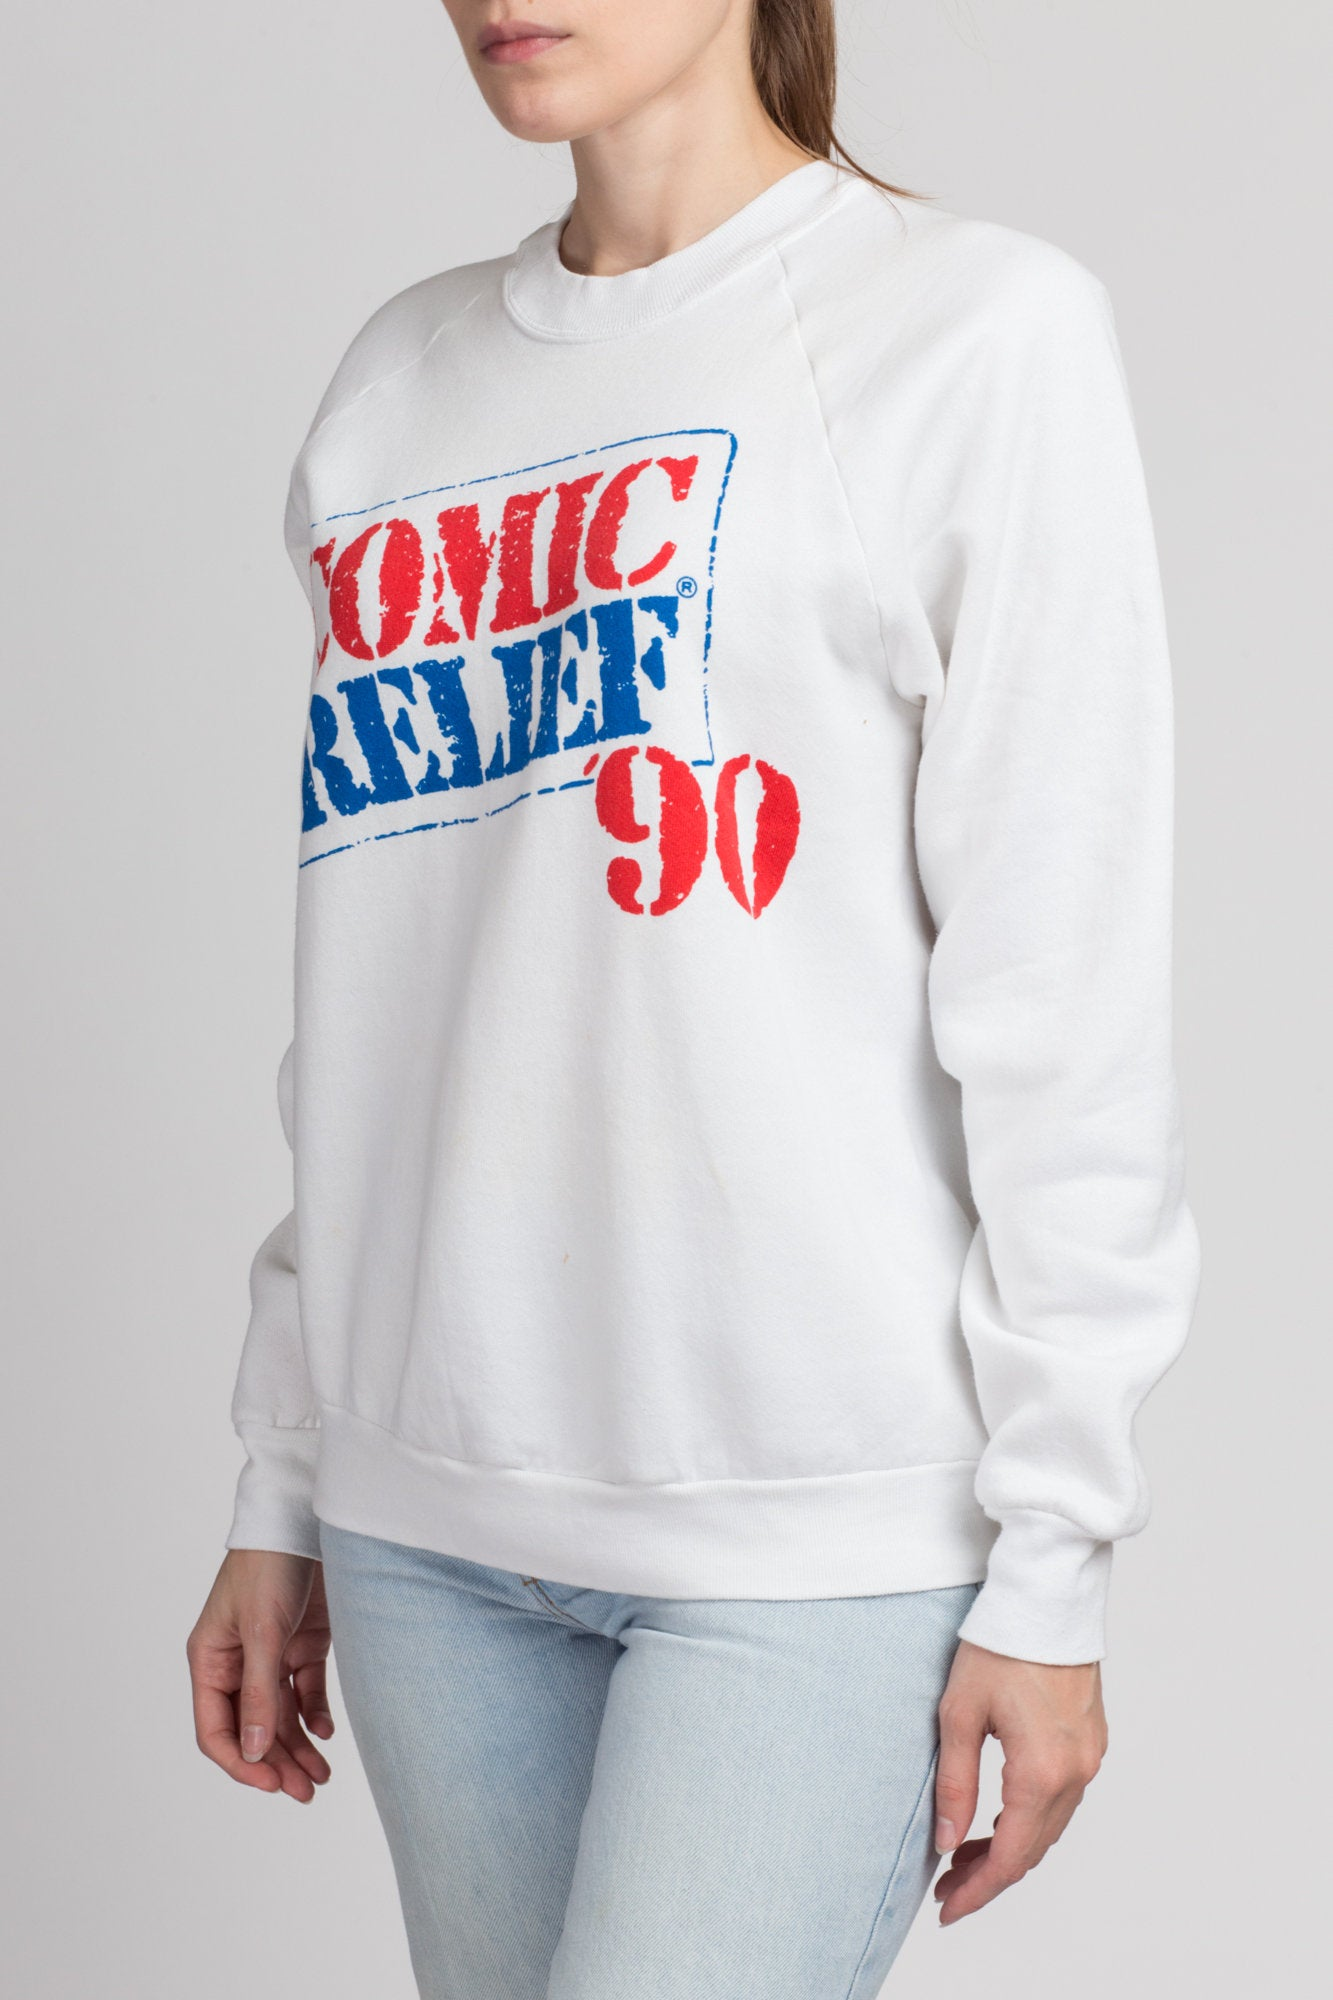 Vintage 1990 Comic Relief Sweatshirt - Men's Medium